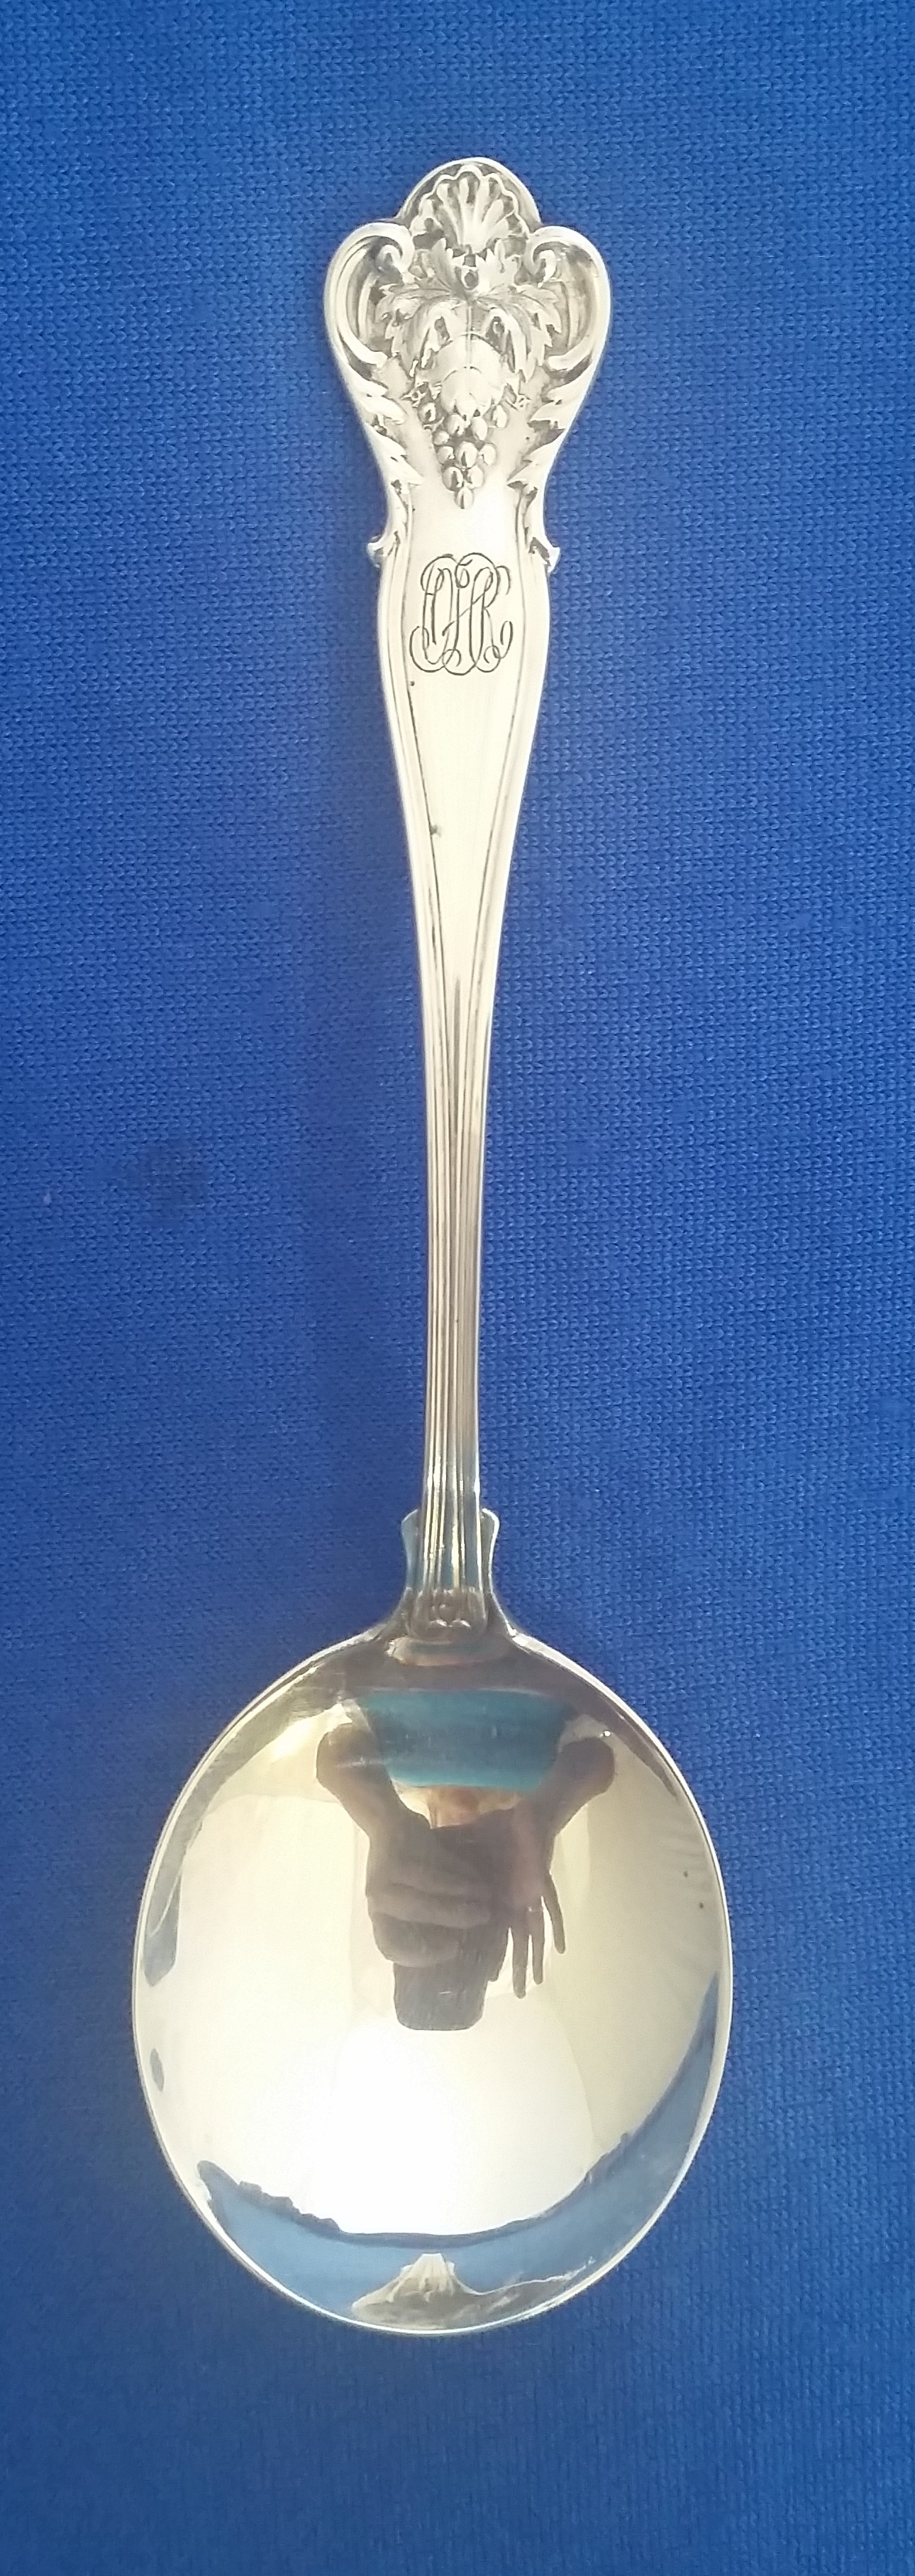 Durgin/Gorham - 'New Vintage' - Boullion Spoon